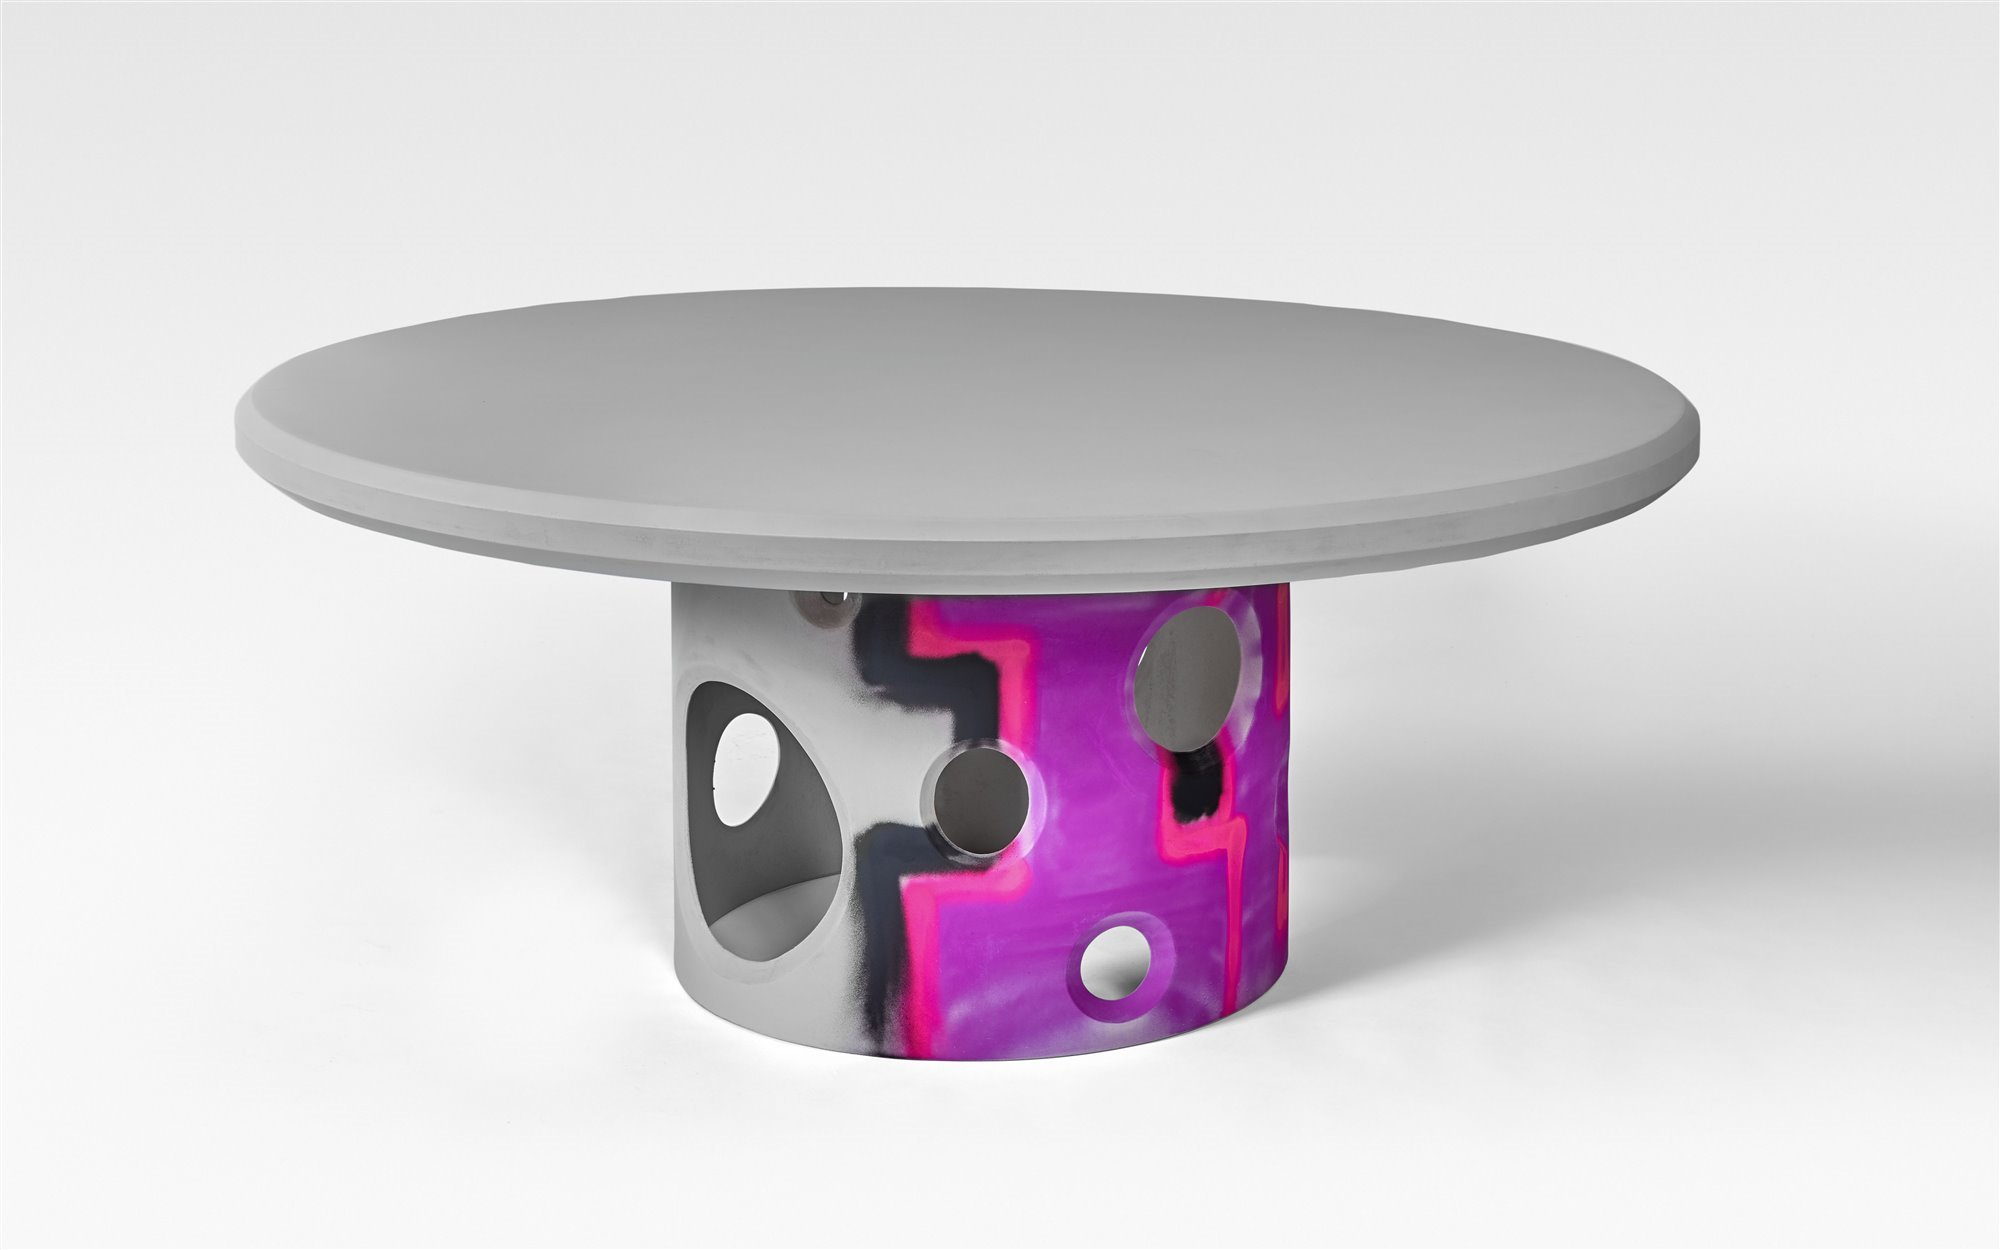 Virgil Abloh Efflorescence round table Galerie kreo